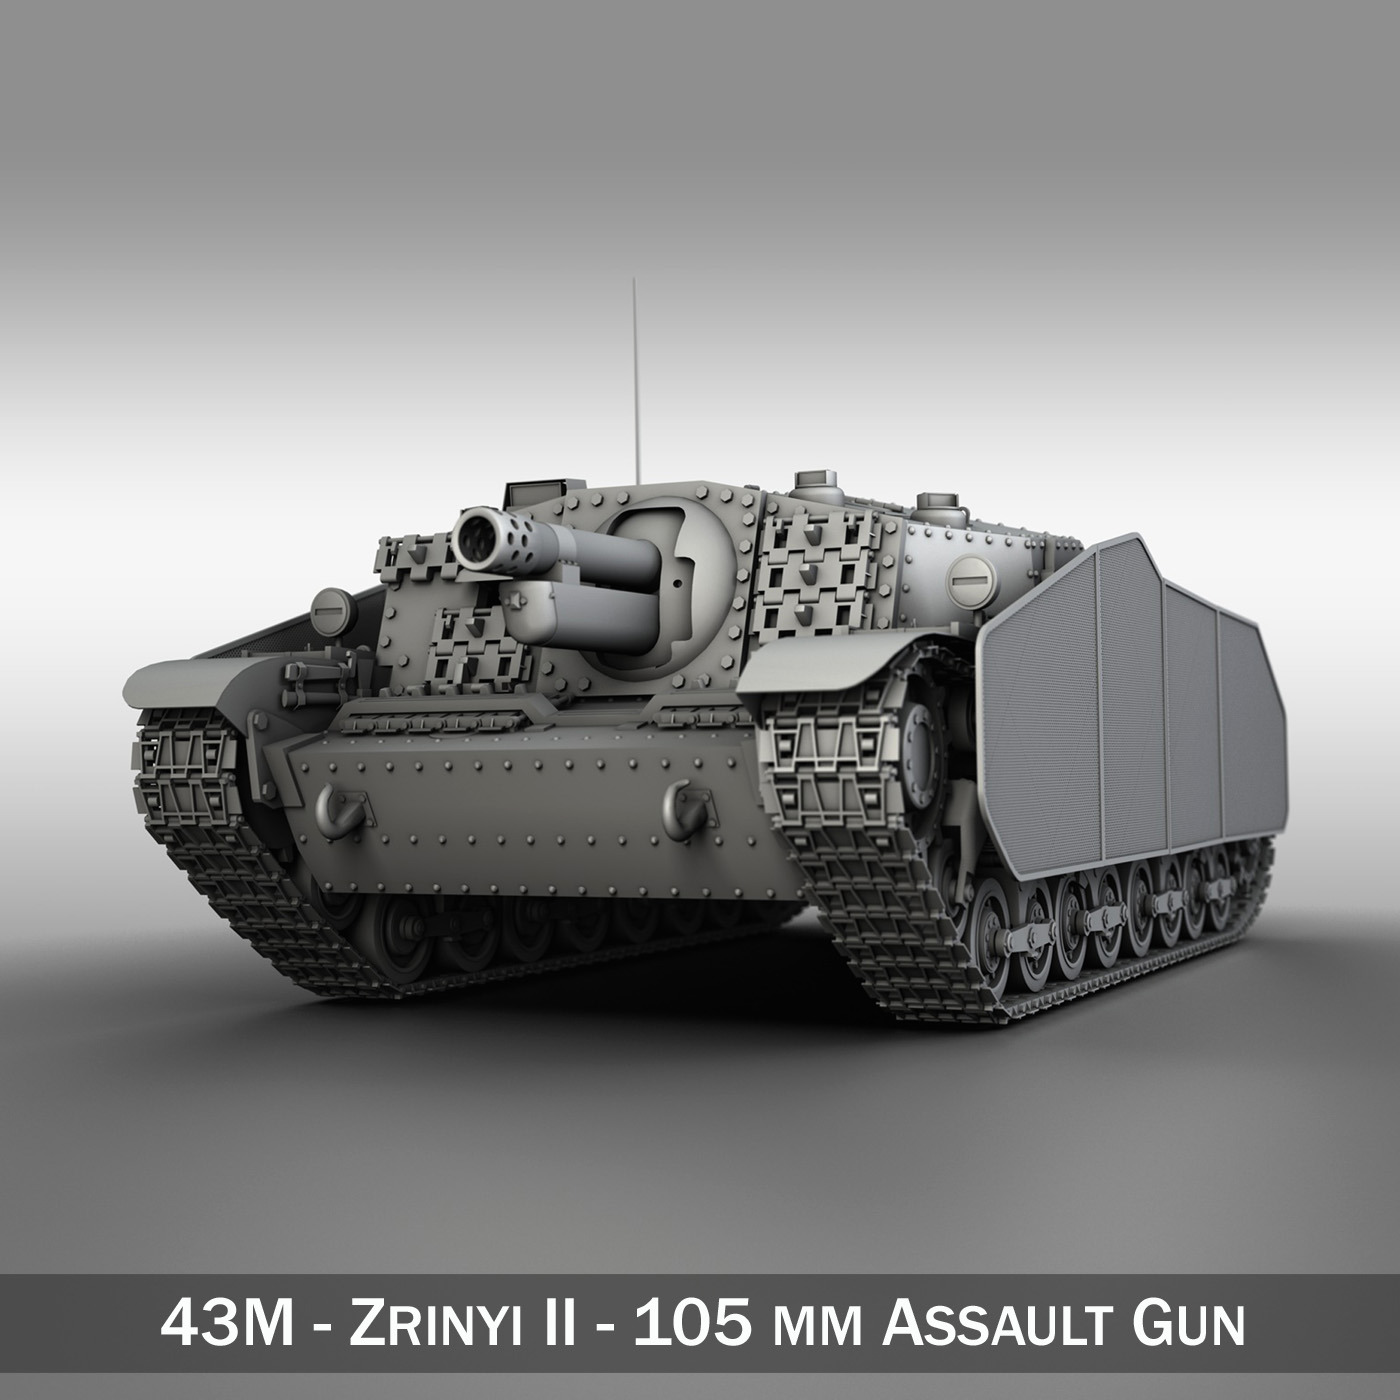 43m zrinyi ii – hungarian assault gun 3d model 3ds fbx c4d lwo obj 251630